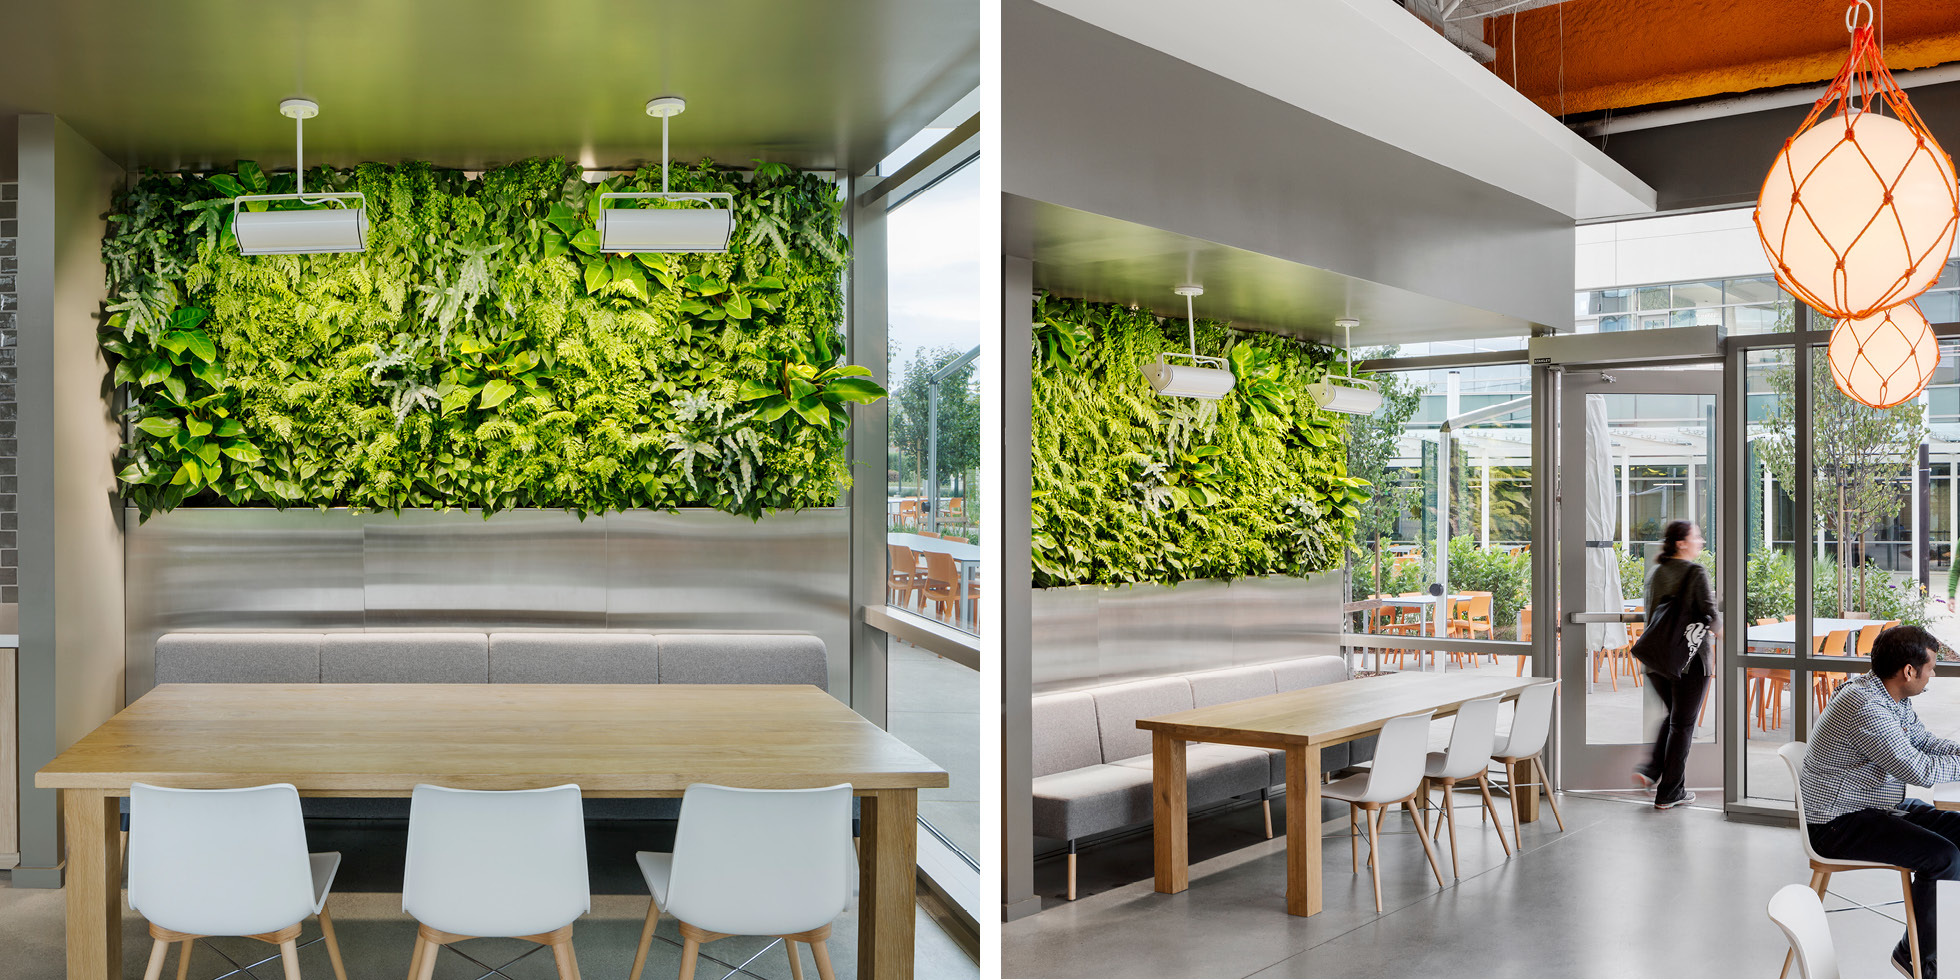 Palo Alto Networks Living Wall by Habitat Horticulture - View 2